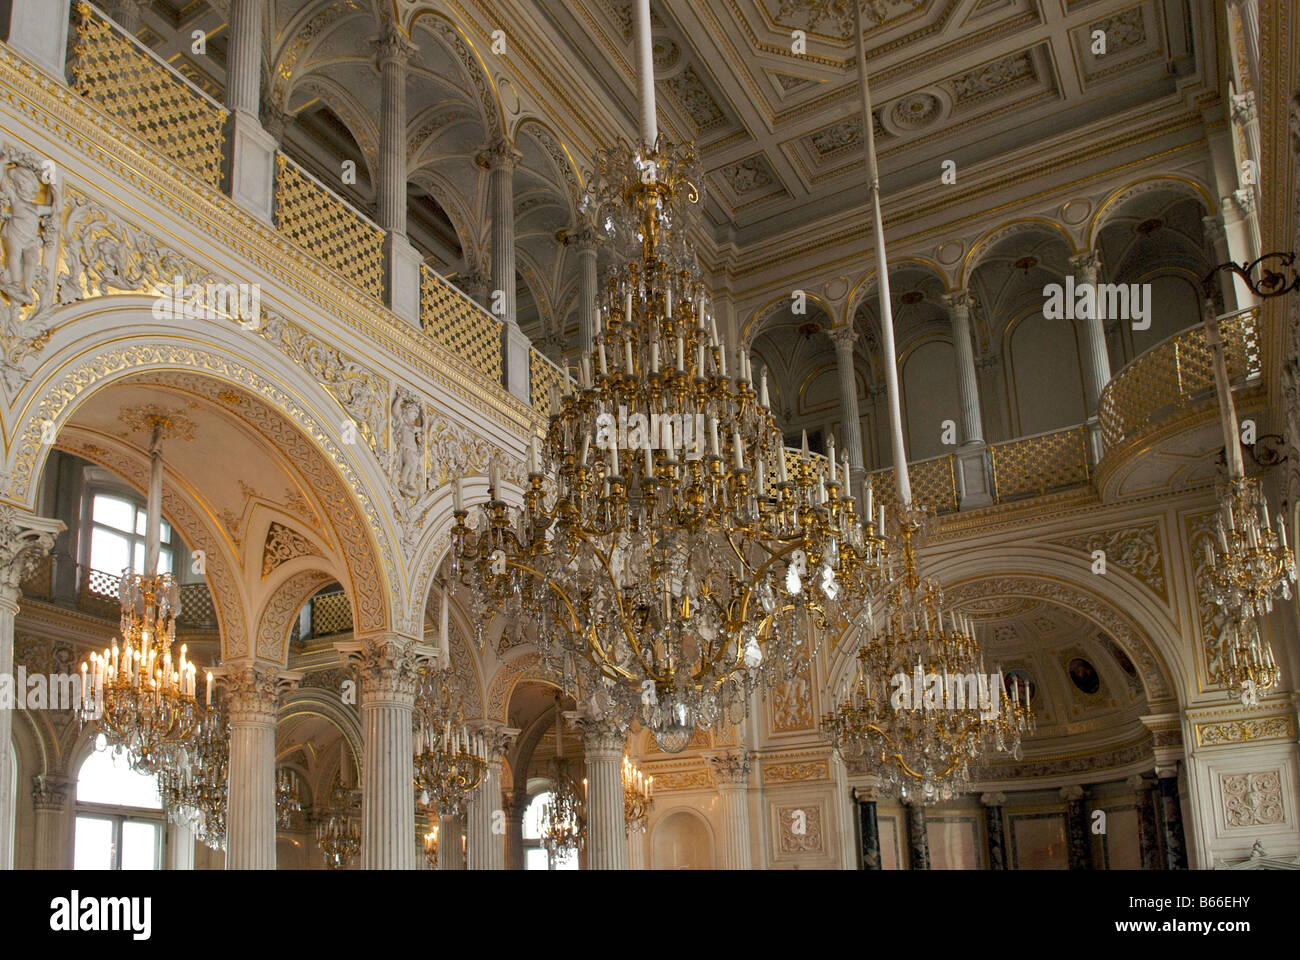 Ballroom with chandeliers stock photos ballroom with chandeliers chandeliers pavilion hall winter palace hermitage museum st petersburg russia stock image aloadofball Choice Image